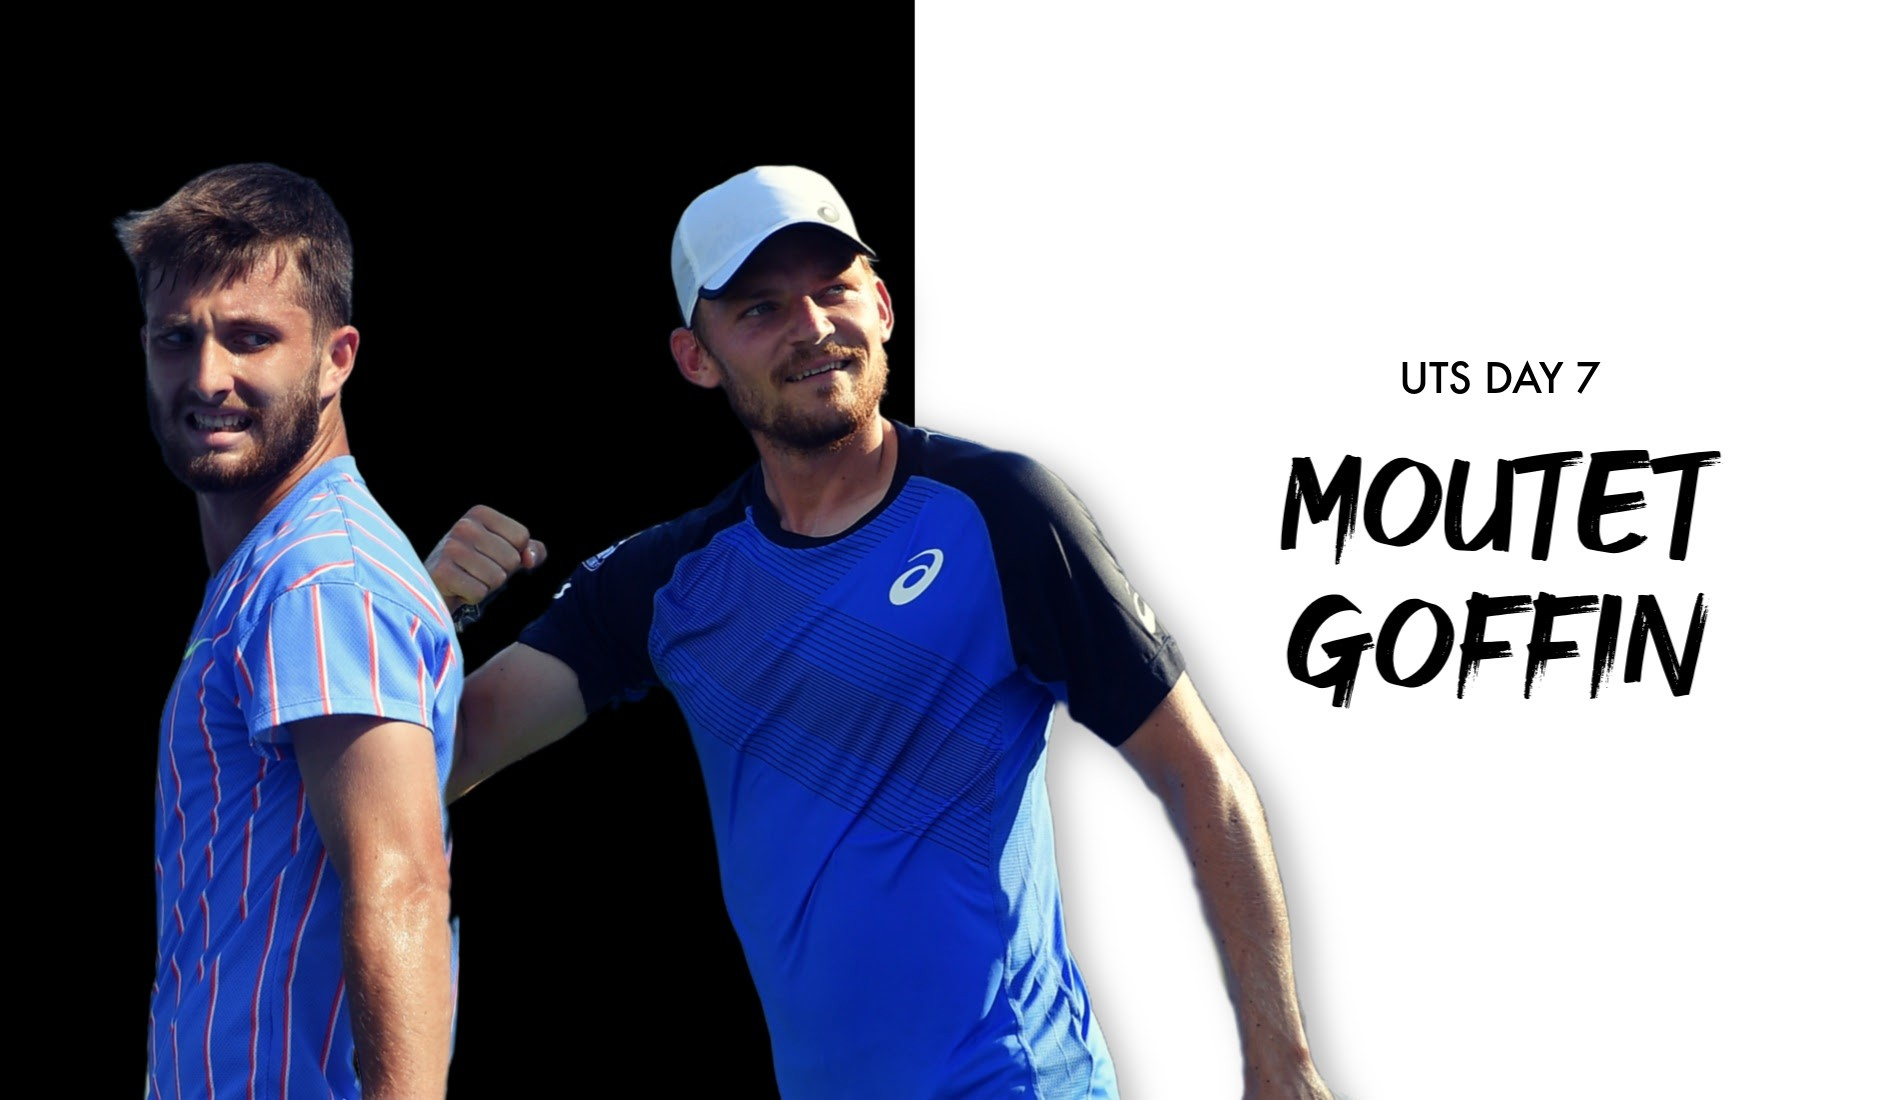 """UTS1 - Day 7: Corentin Moutet """"The Tornado"""" vs David Goffin """"The Wall"""""""